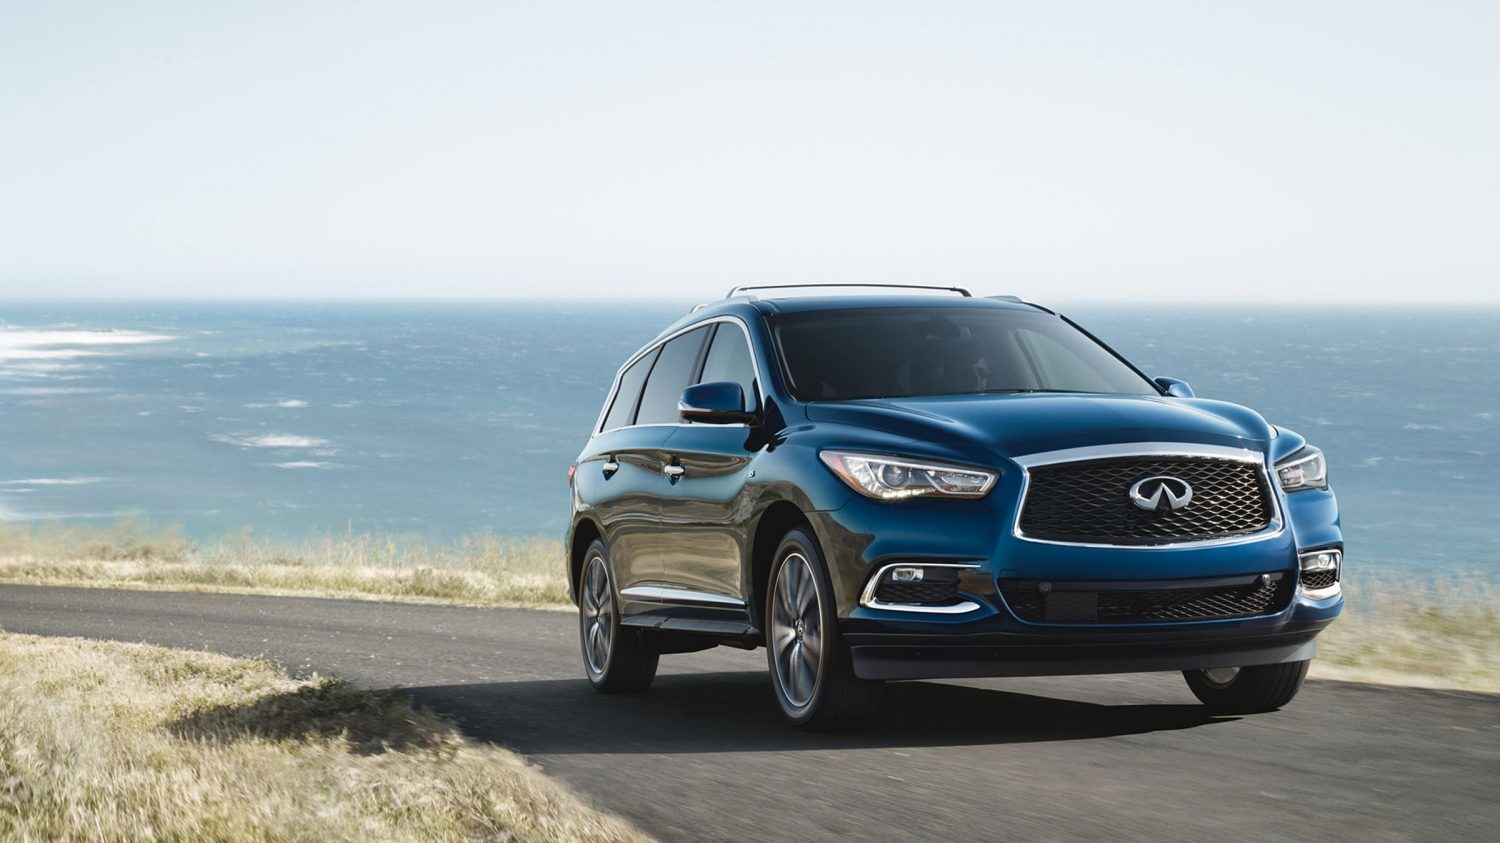 2018 INFINITI QX60 Crossover performance features